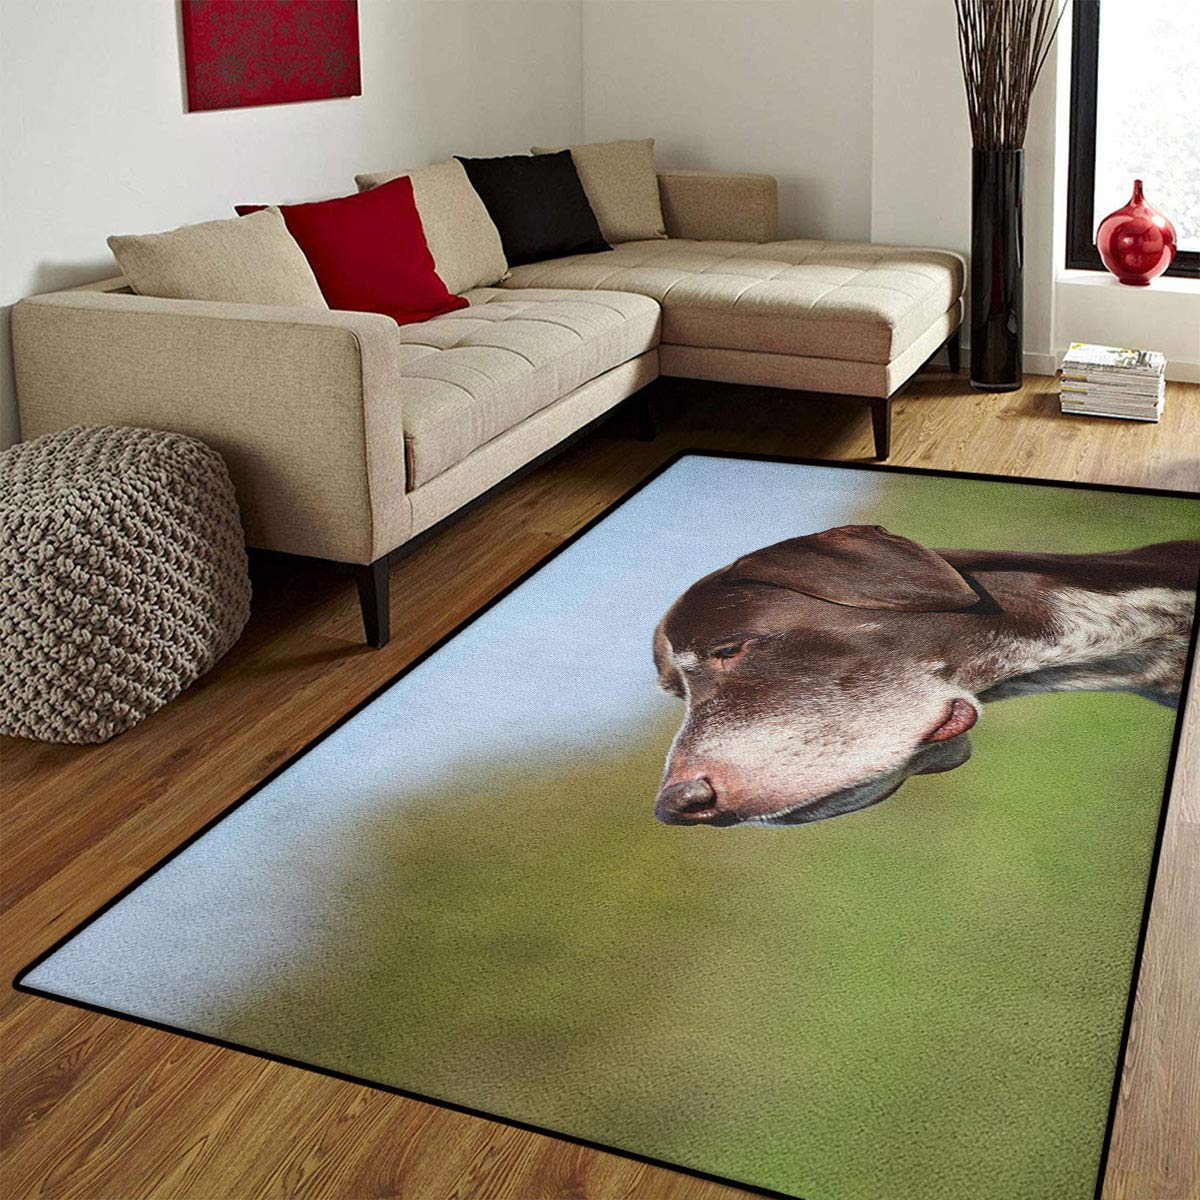 color03 6'x9'(W180cm x L270cm) color03 6'x9'(W180cm x L270cm) Hunting,Bath Mat Non Slip,German Short Haired Pointer in Wilderness Portrait Photograph Kurzhaar Pet Dog,Bathroom Mat for tub Non Slip,Multicolor,6x9 ft